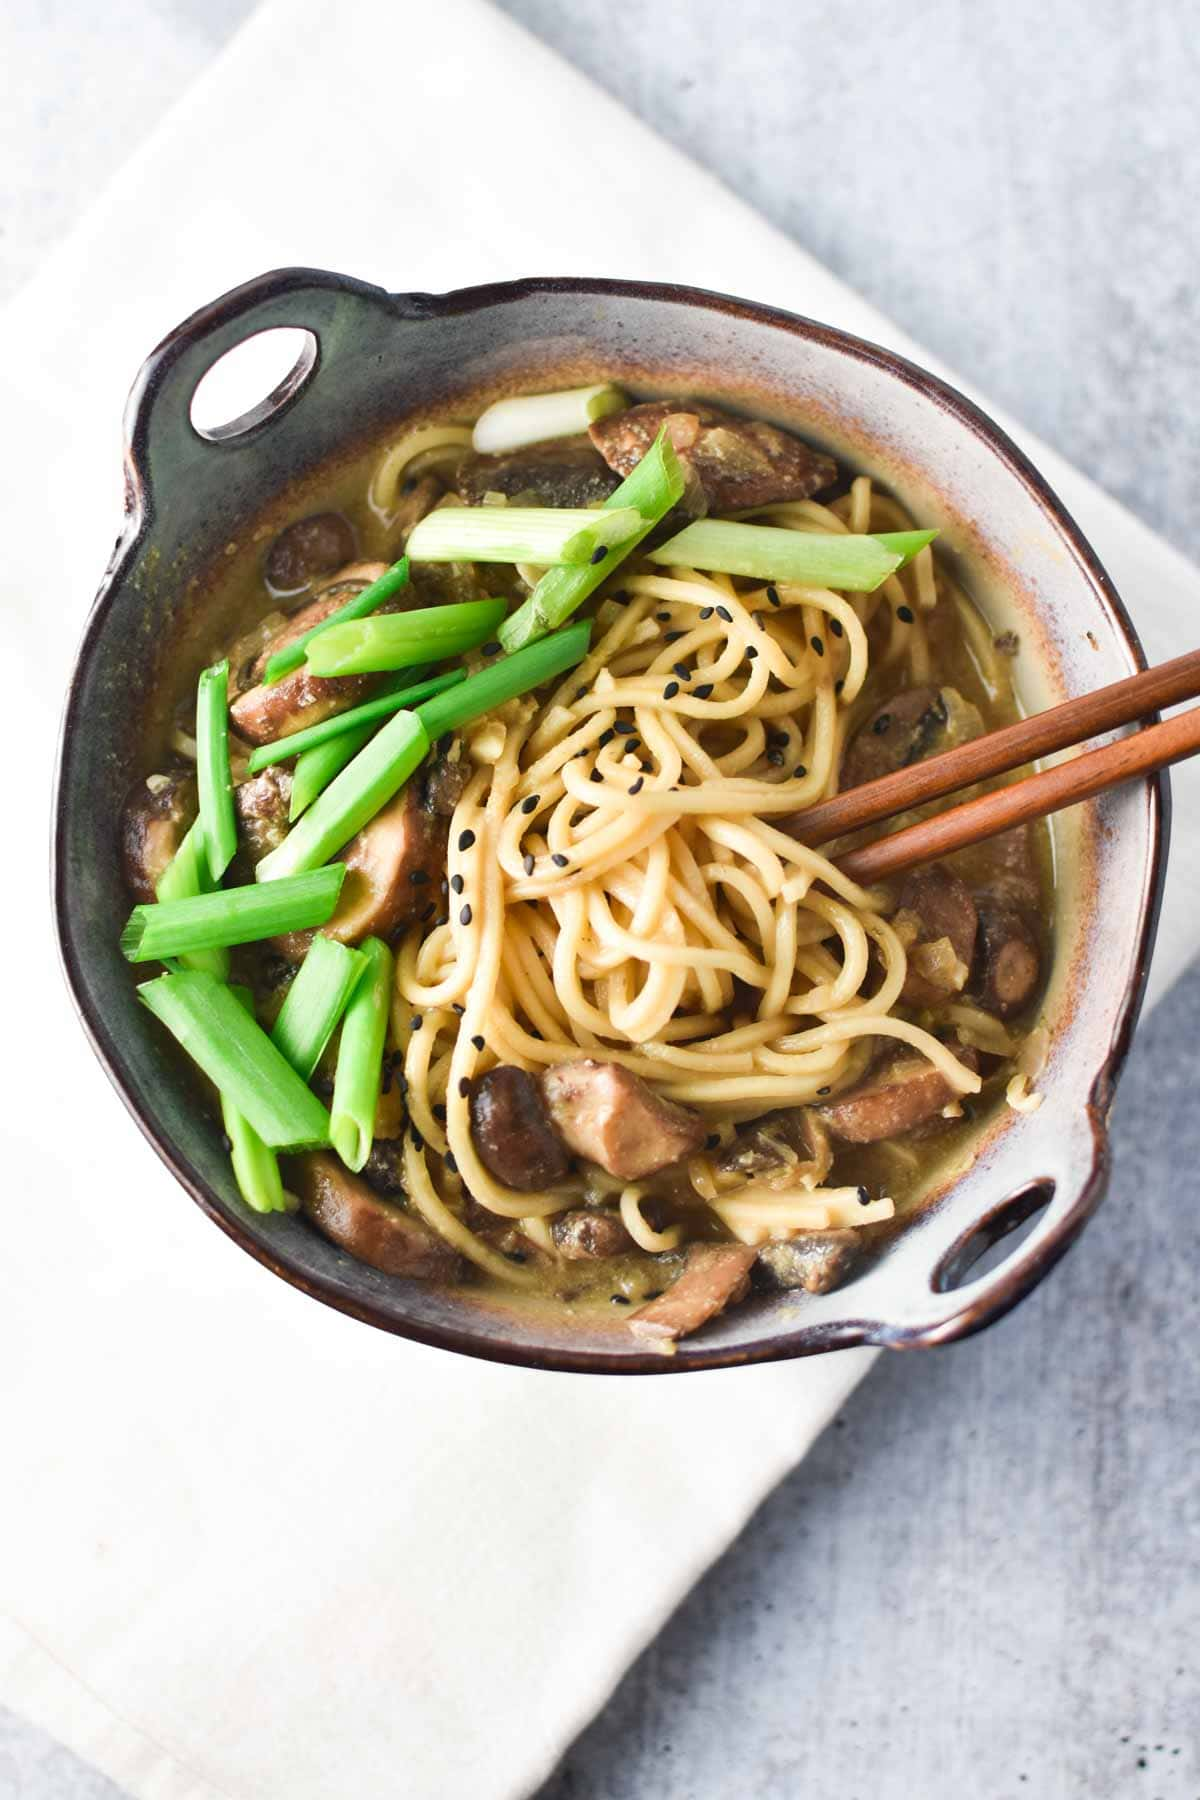 Vegan ramen in a bowl topped with scallions and mushrooms